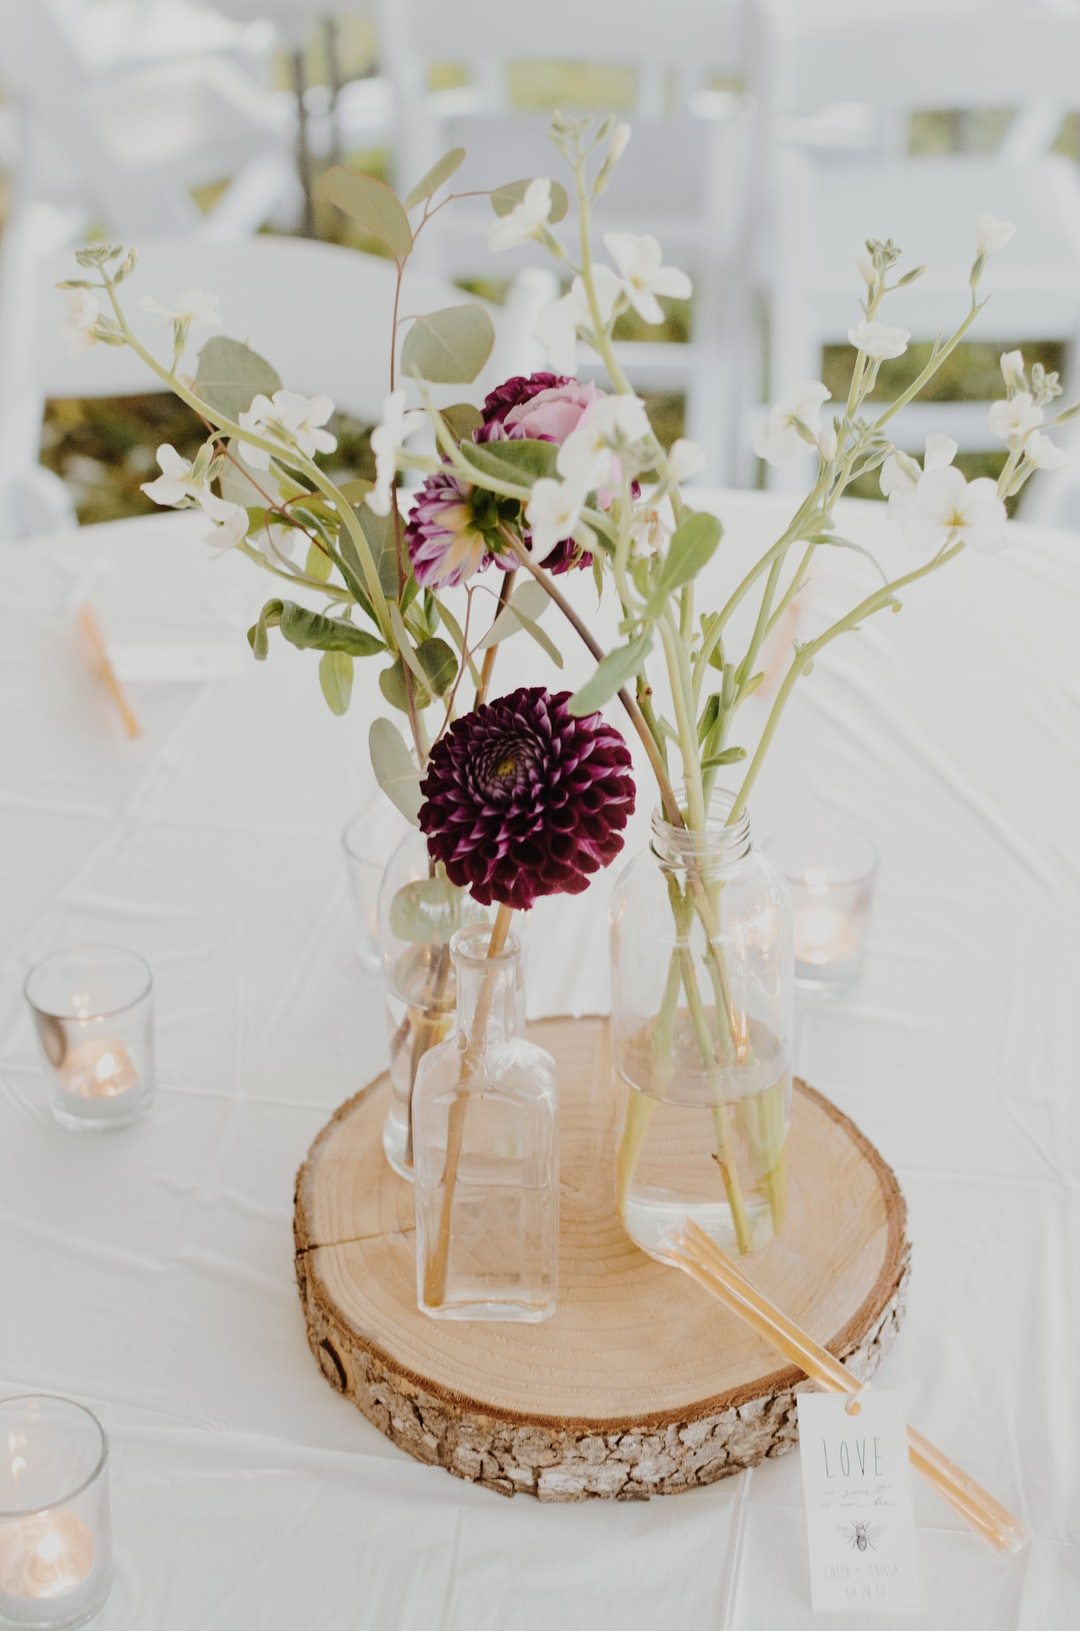 wedding reception centerpiece photo by kelly sikkema kellysikkema on unsplash. Black Bedroom Furniture Sets. Home Design Ideas